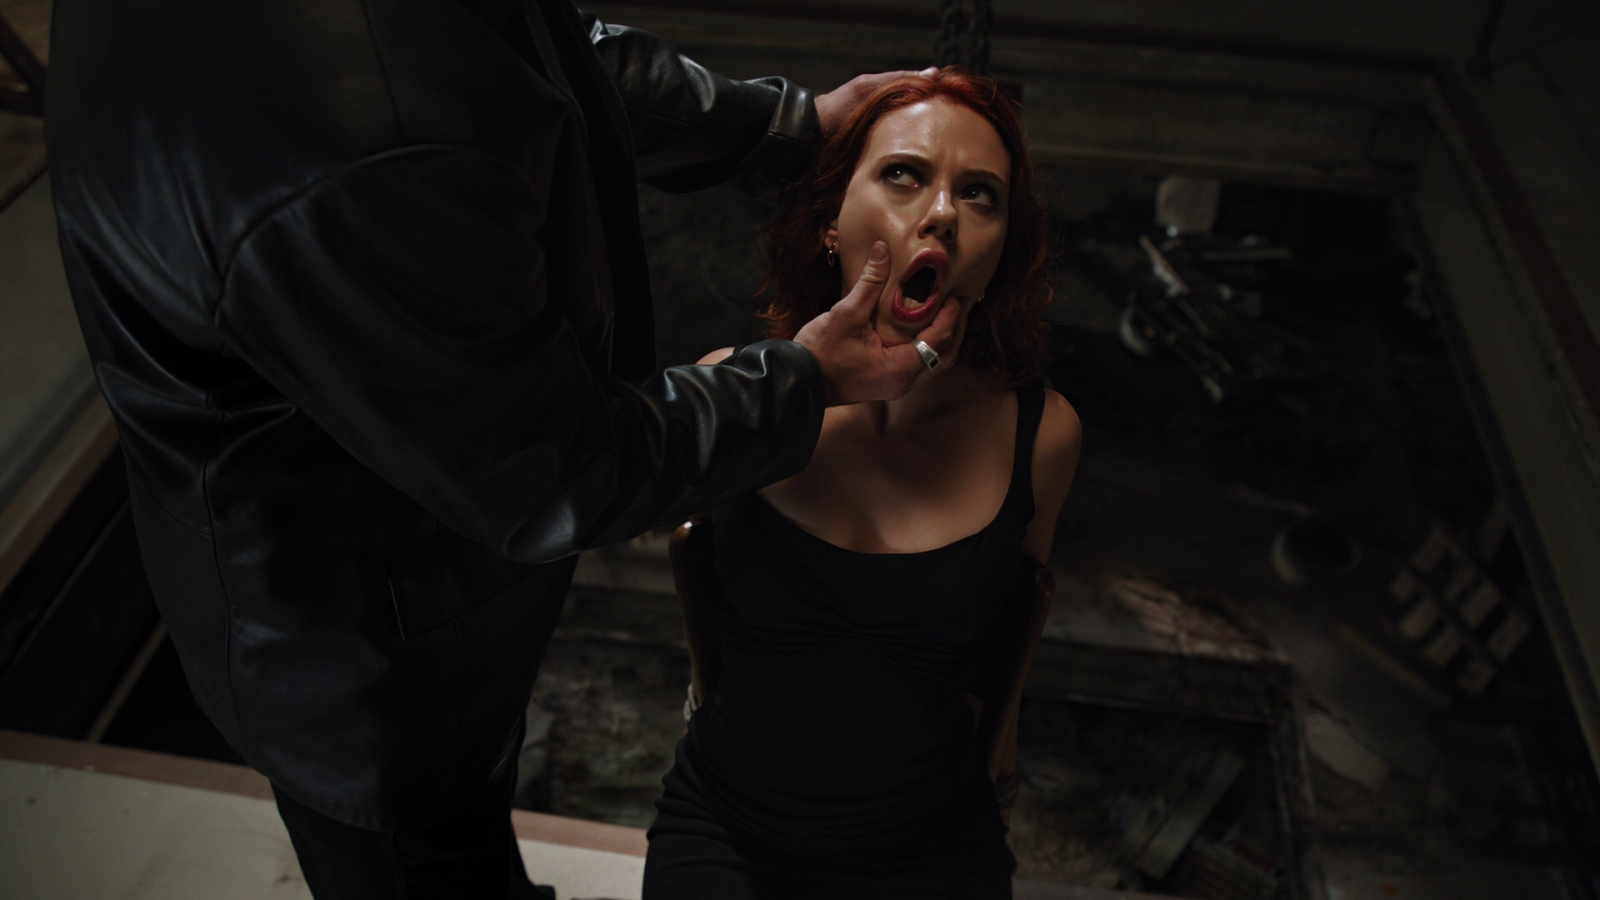 Opinion Scarlett johansson black widow naked your